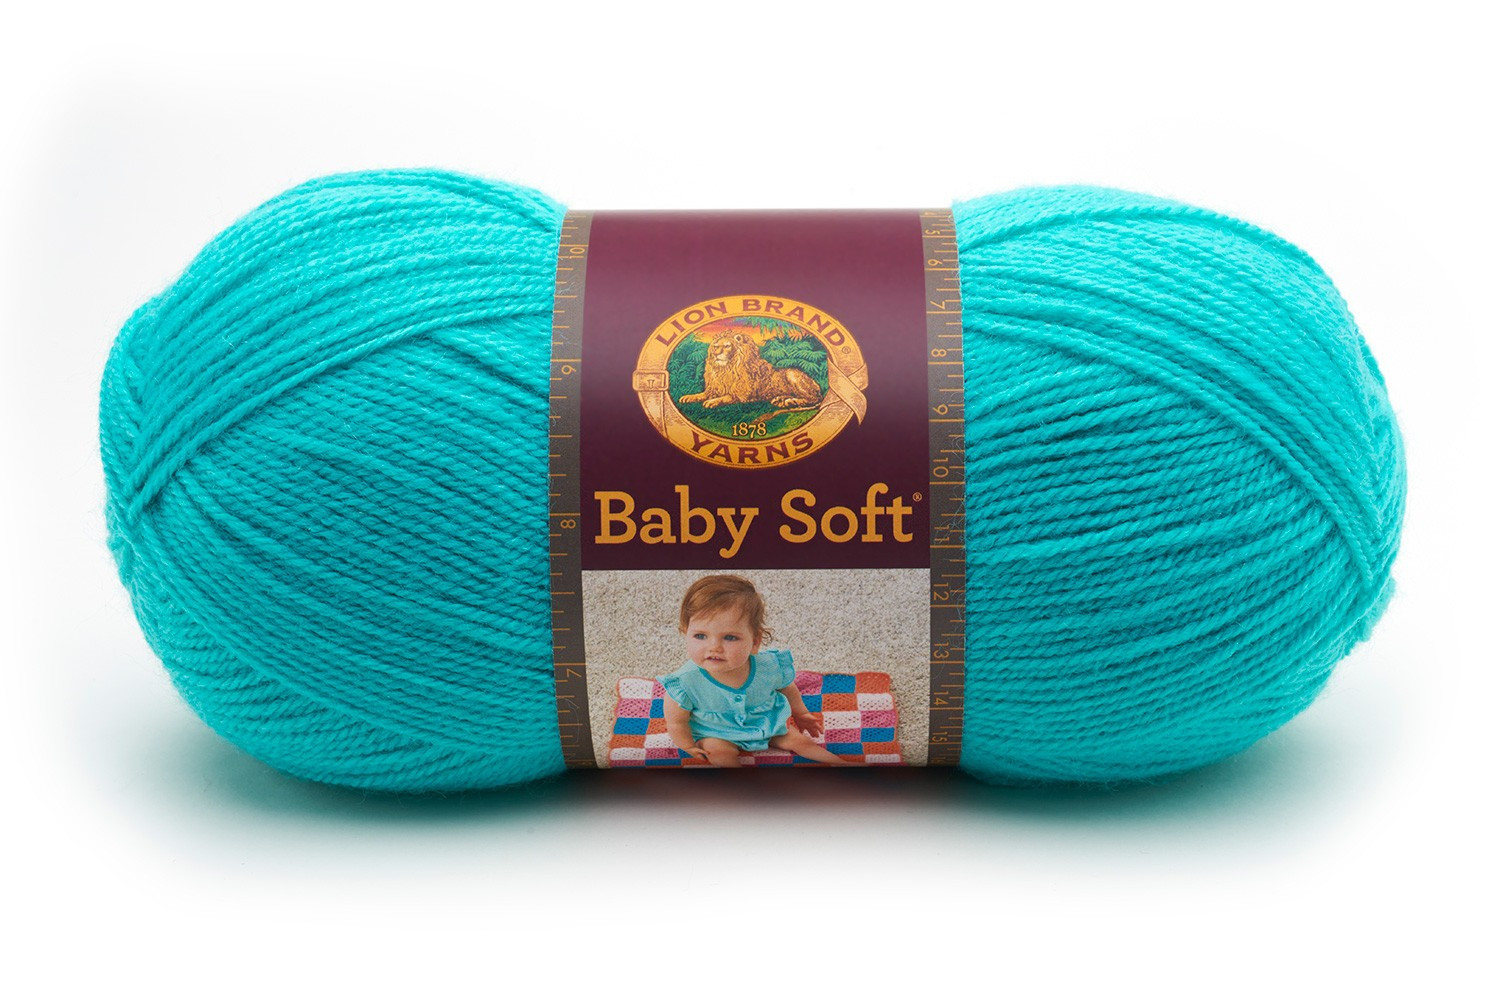 Inspirational the 6 Best Baby Yarns Patterns to Get Crafting Lion Baby soft Yarn Of Gorgeous 49 Pictures Baby soft Yarn